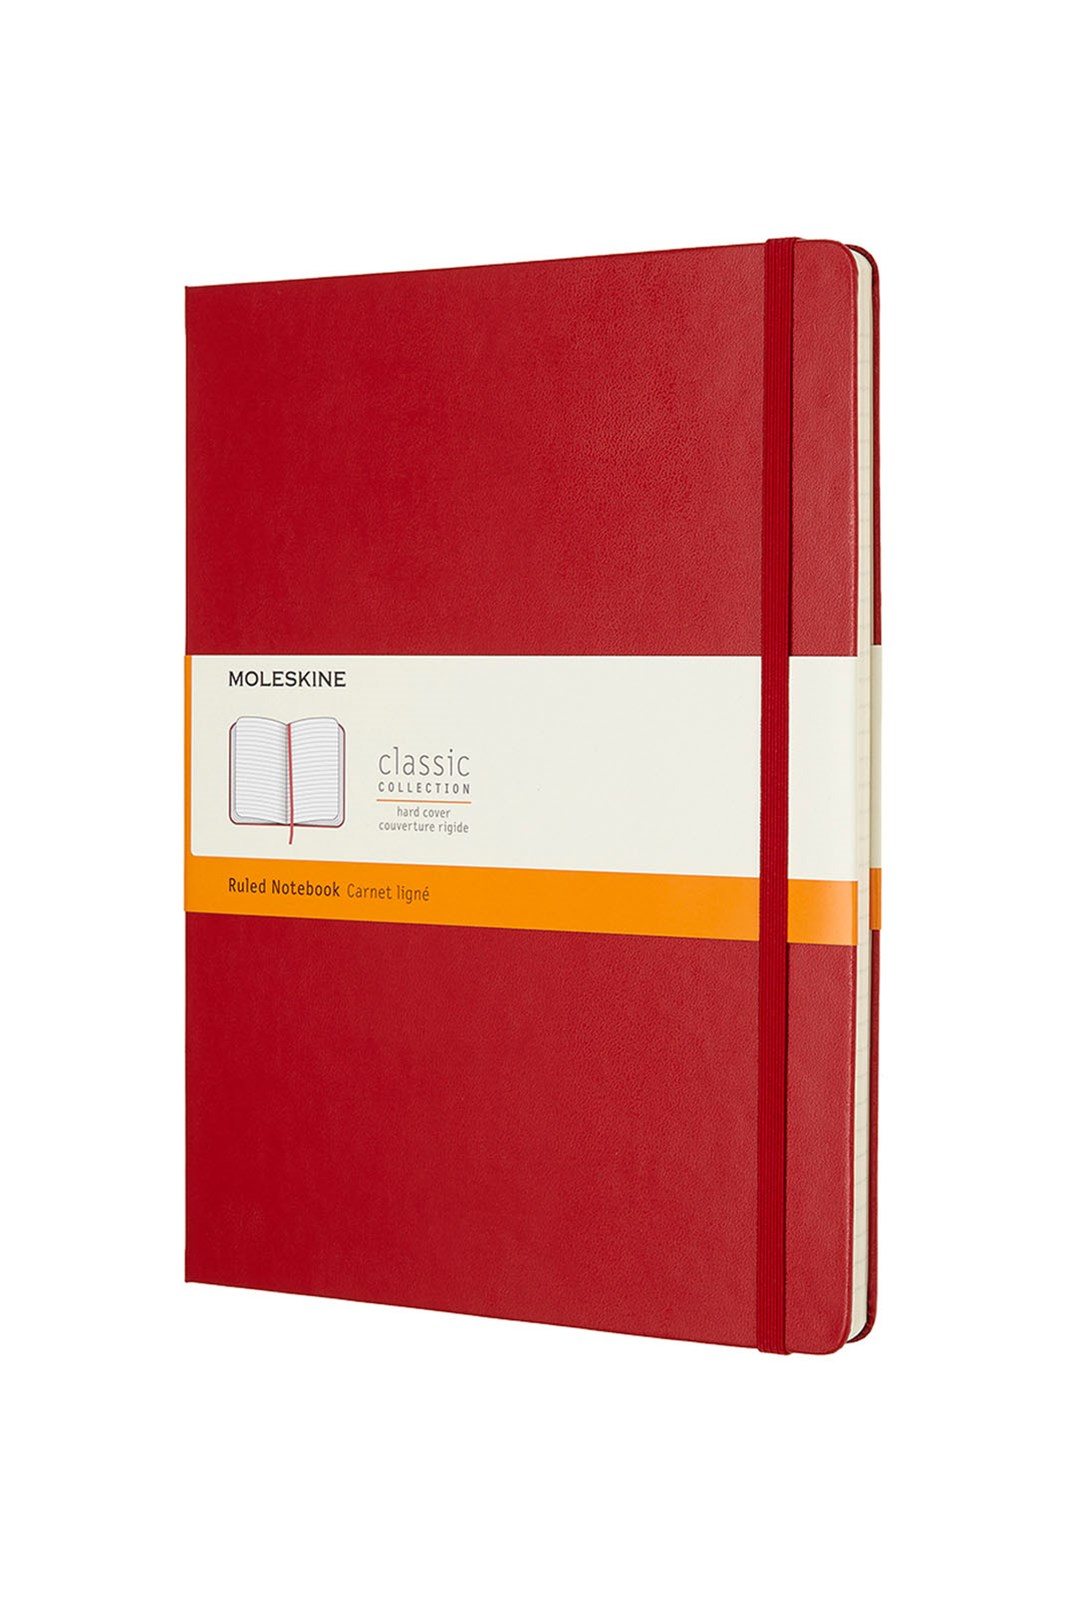 Moleskine - Classic Hard Cover Notebook - Ruled - Extra Large - Scarlet Red